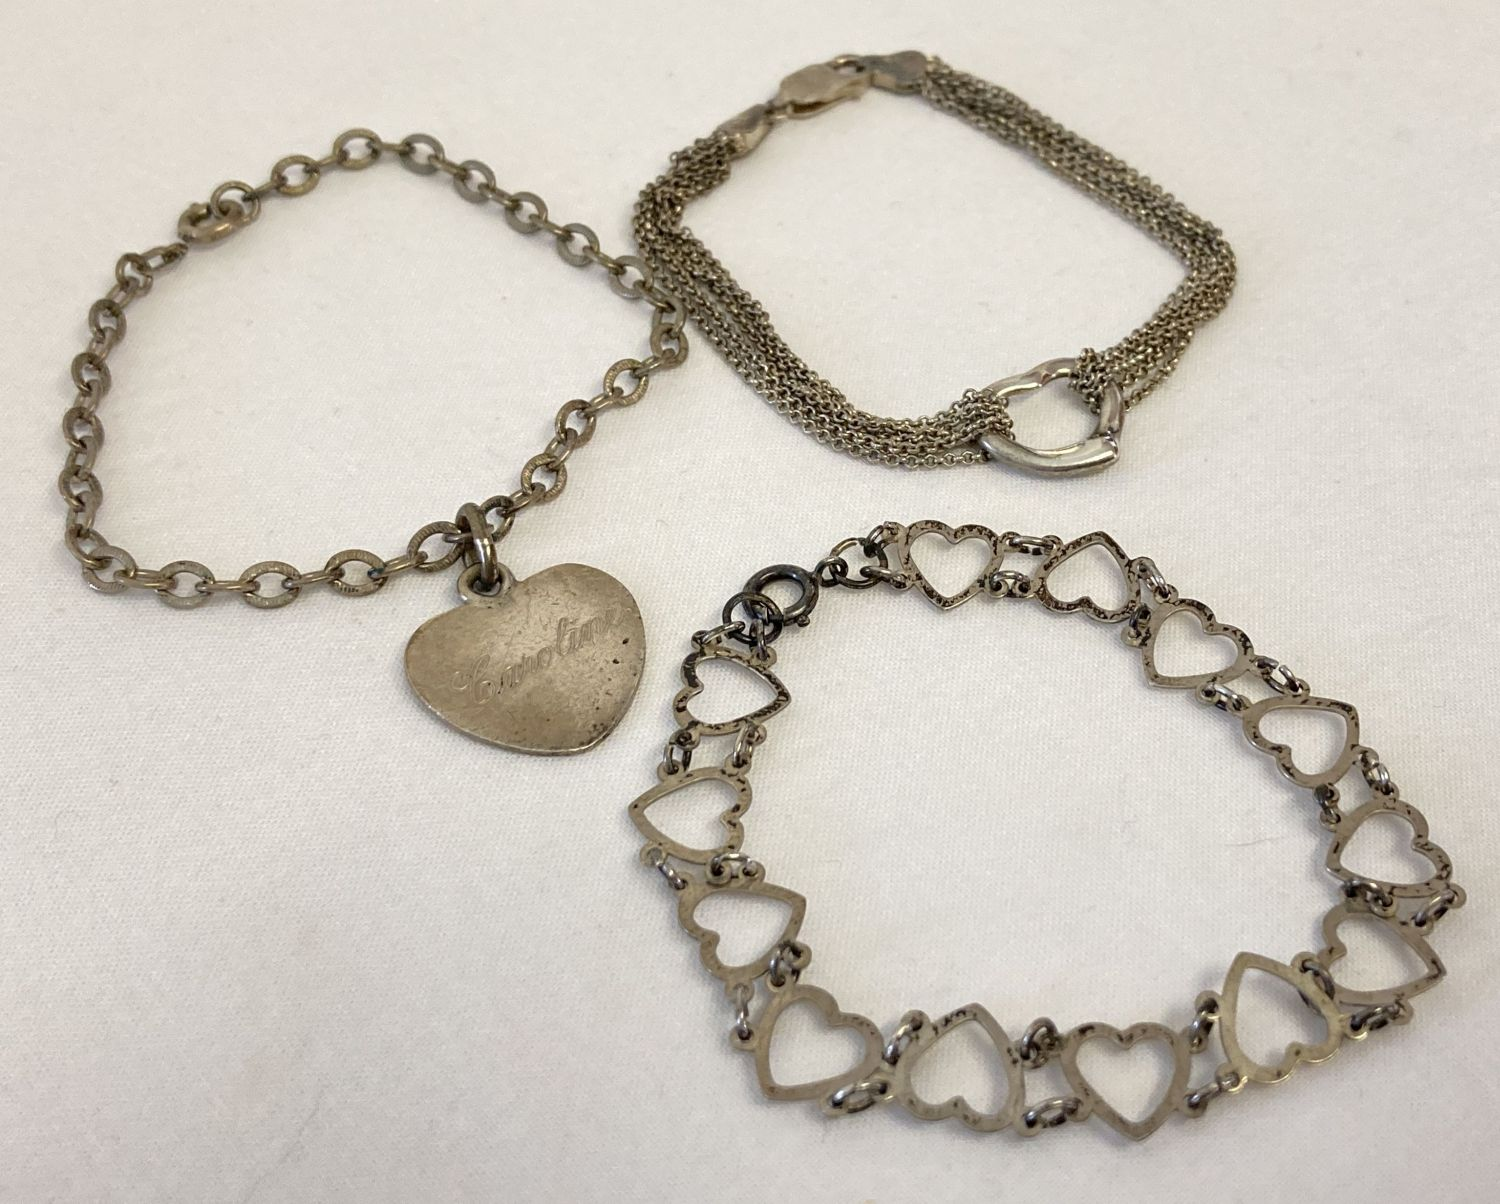 3 silver bracelets. Heart link bracelet, belcher chain with heart shaped charm and a multi chain